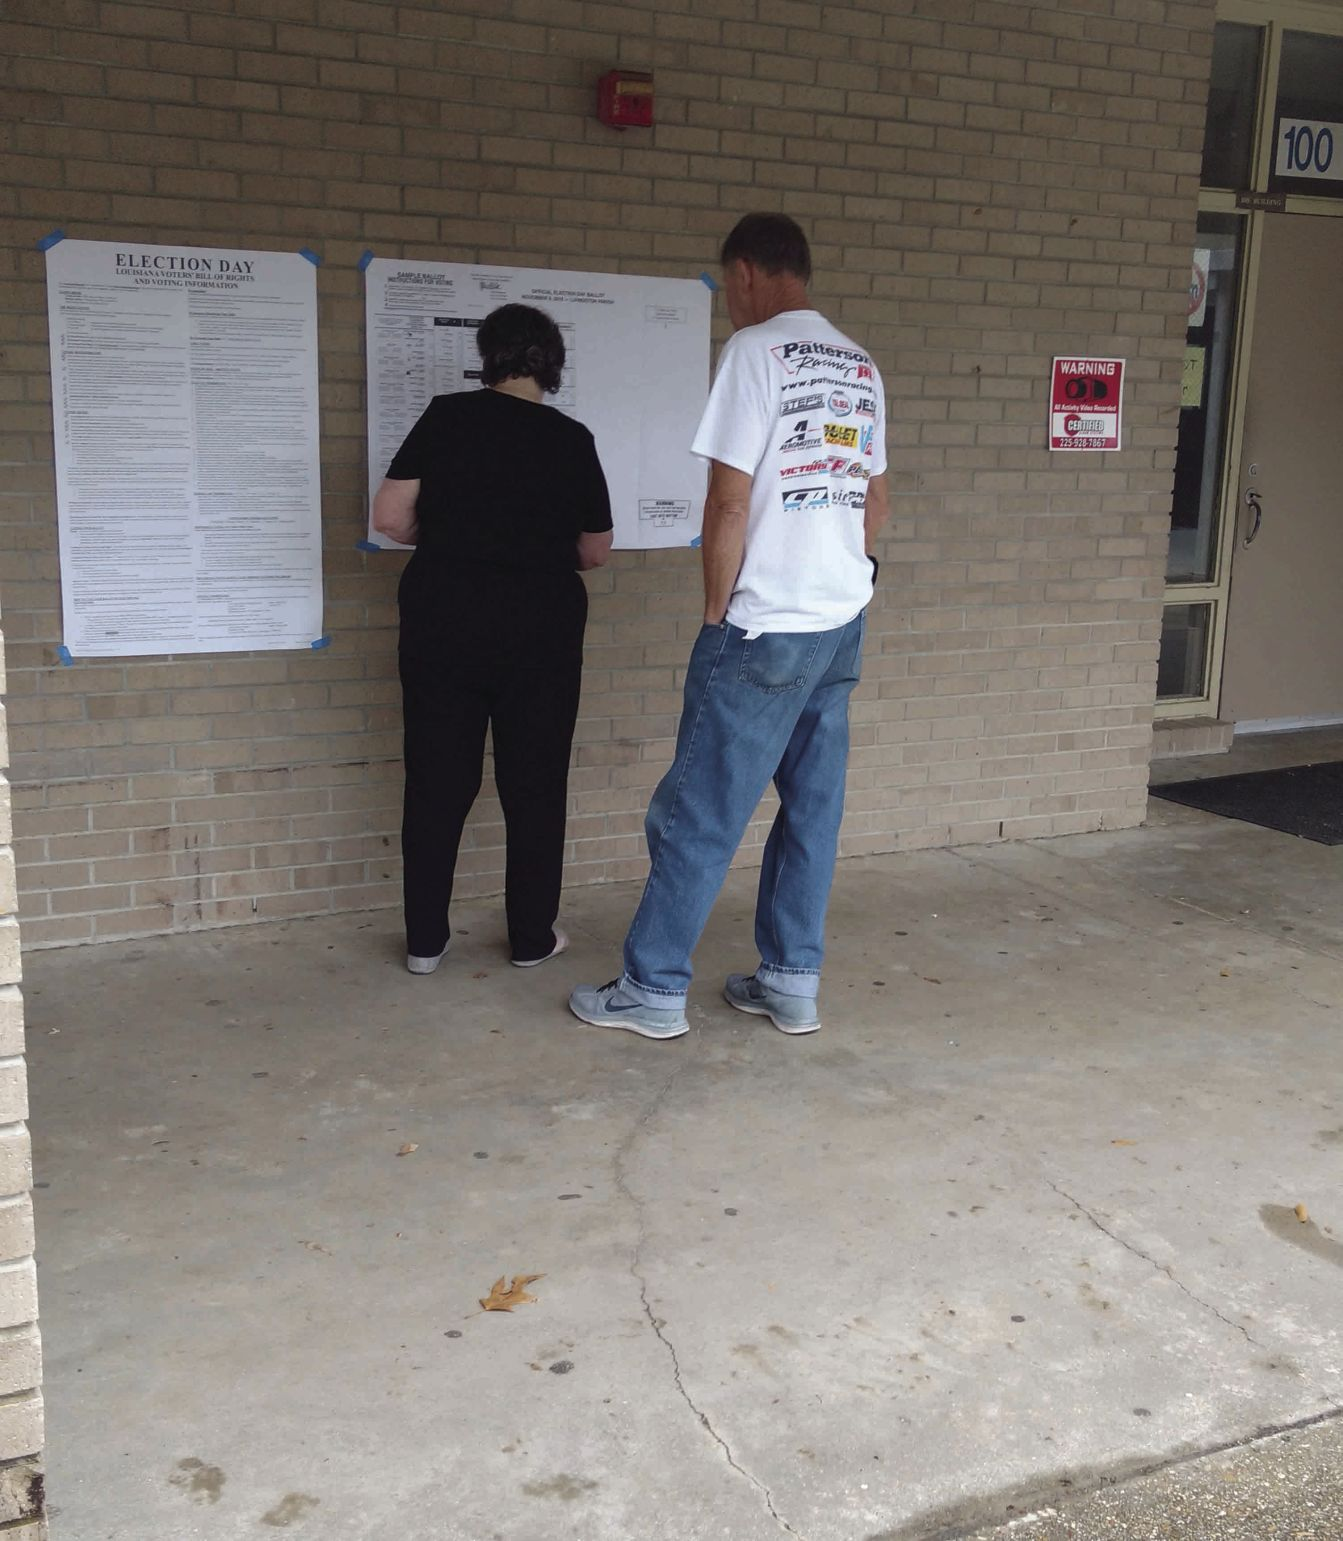 Quick voting lines please Walker voters on Election Day | News ...